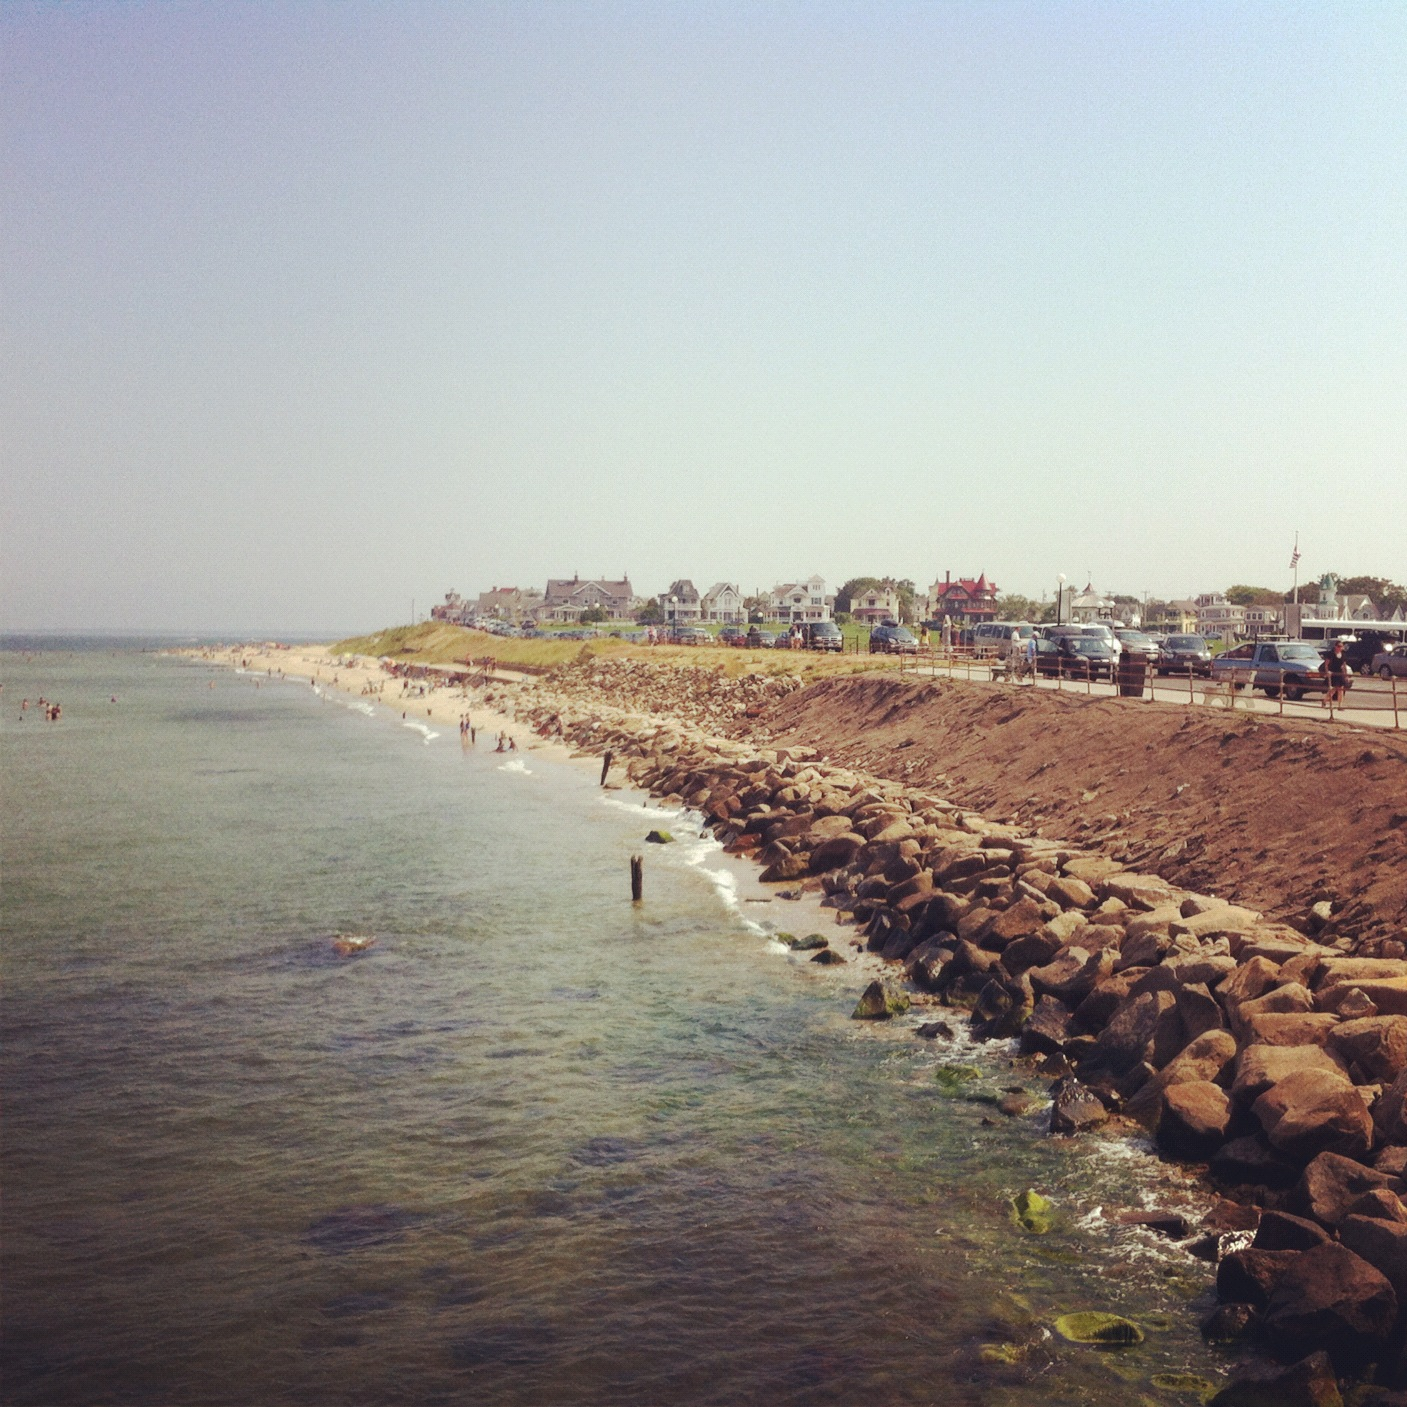 You don't have to go far to find the beach on Martha's Vineyard.